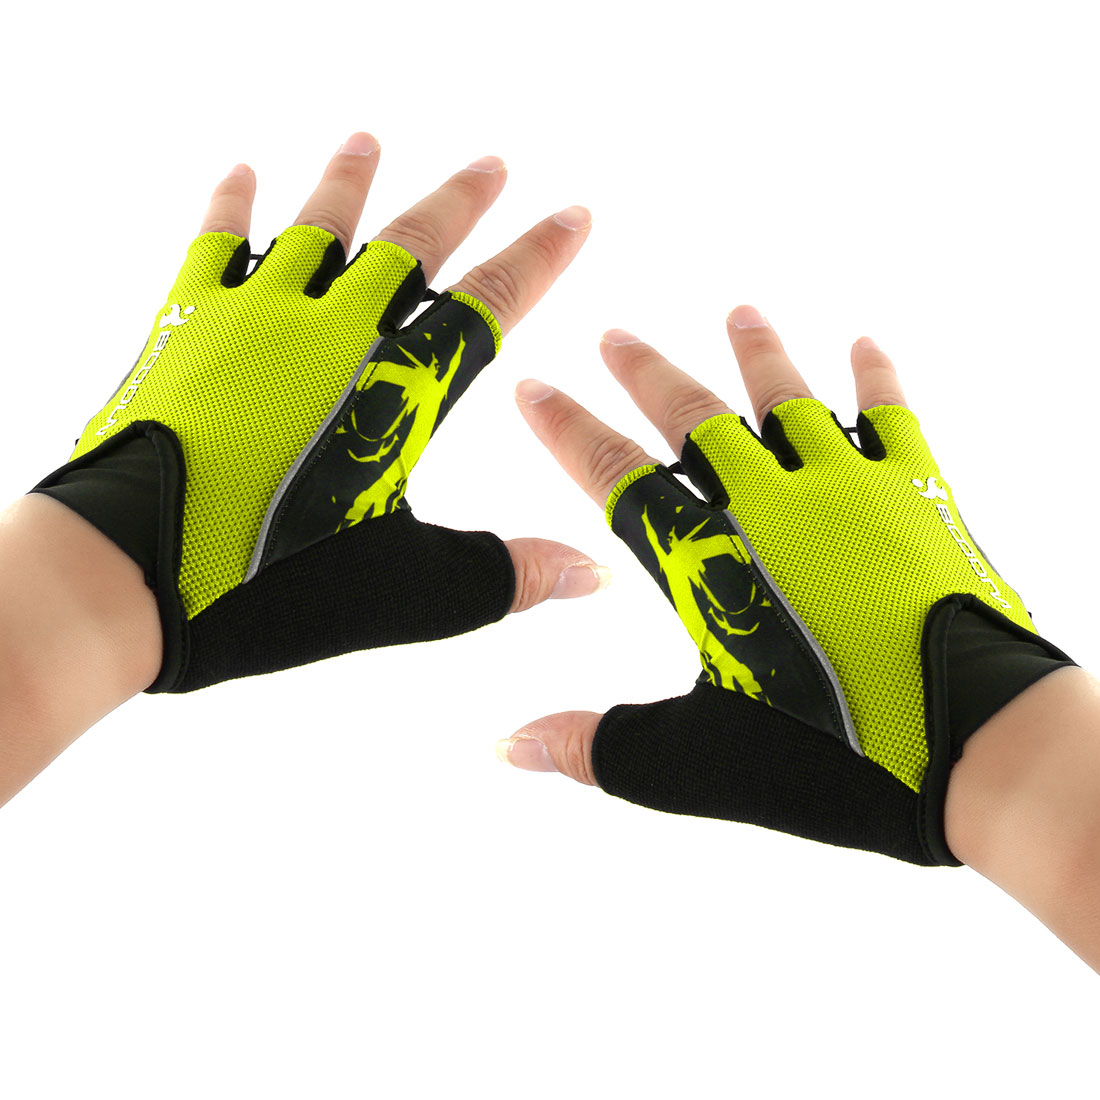 Polyester Exercise Sports Weightlifting Training Workout Protector Half Finger Fitness Gloves Fluorescent Green S Pair